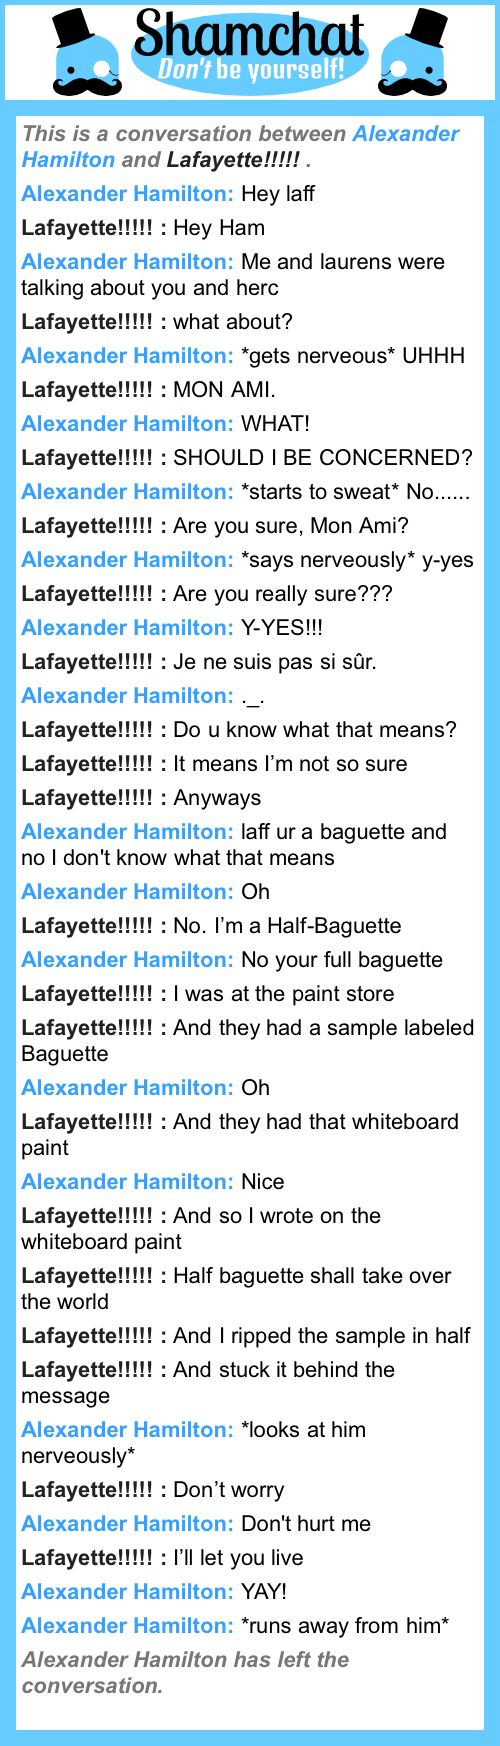 A conversation between      Lafayette!!!!!       and Alexander Hamilton